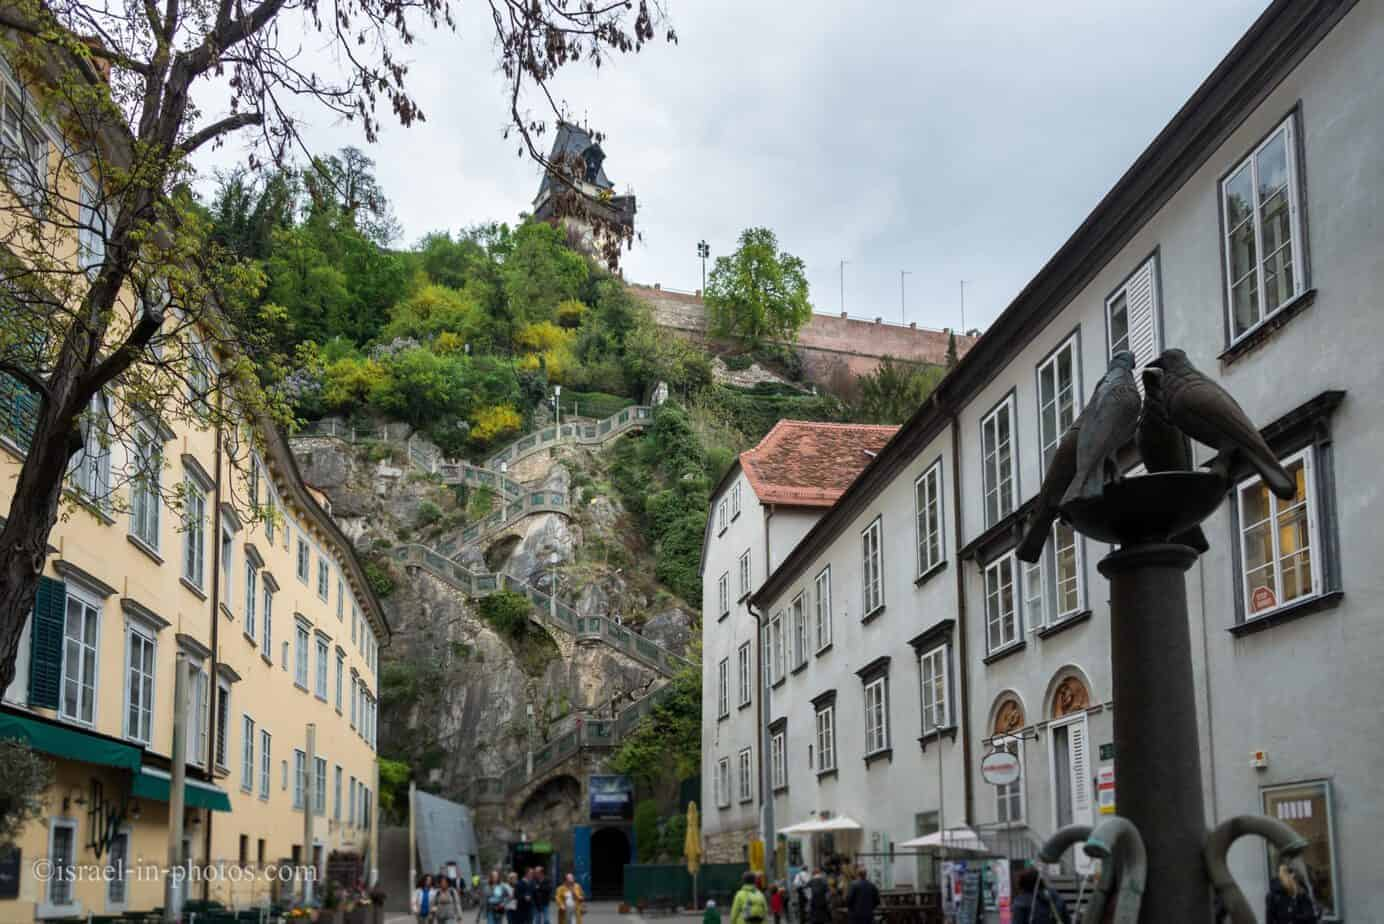 Visiting Graz, the capital city of Styria, Austria